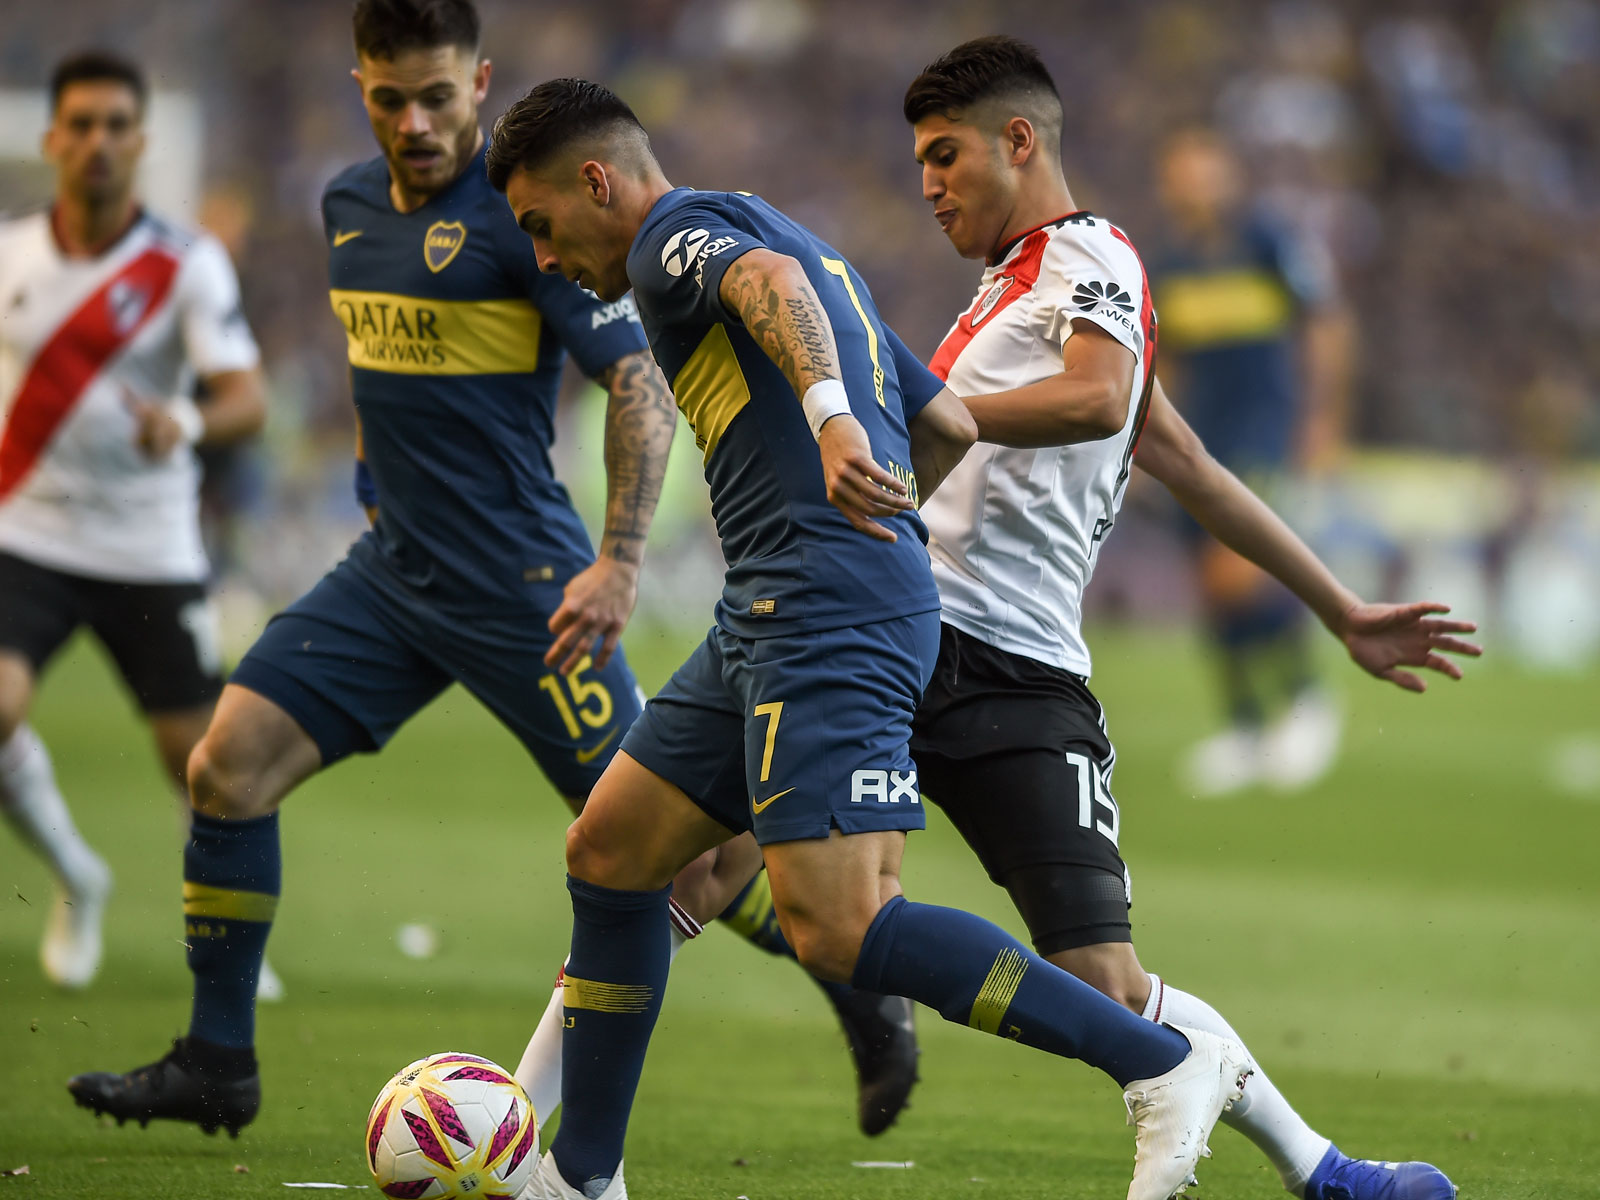 Boca Juniors star Cristian Pavon and River Plate standout Exequiel Palacios could be headed to Europe